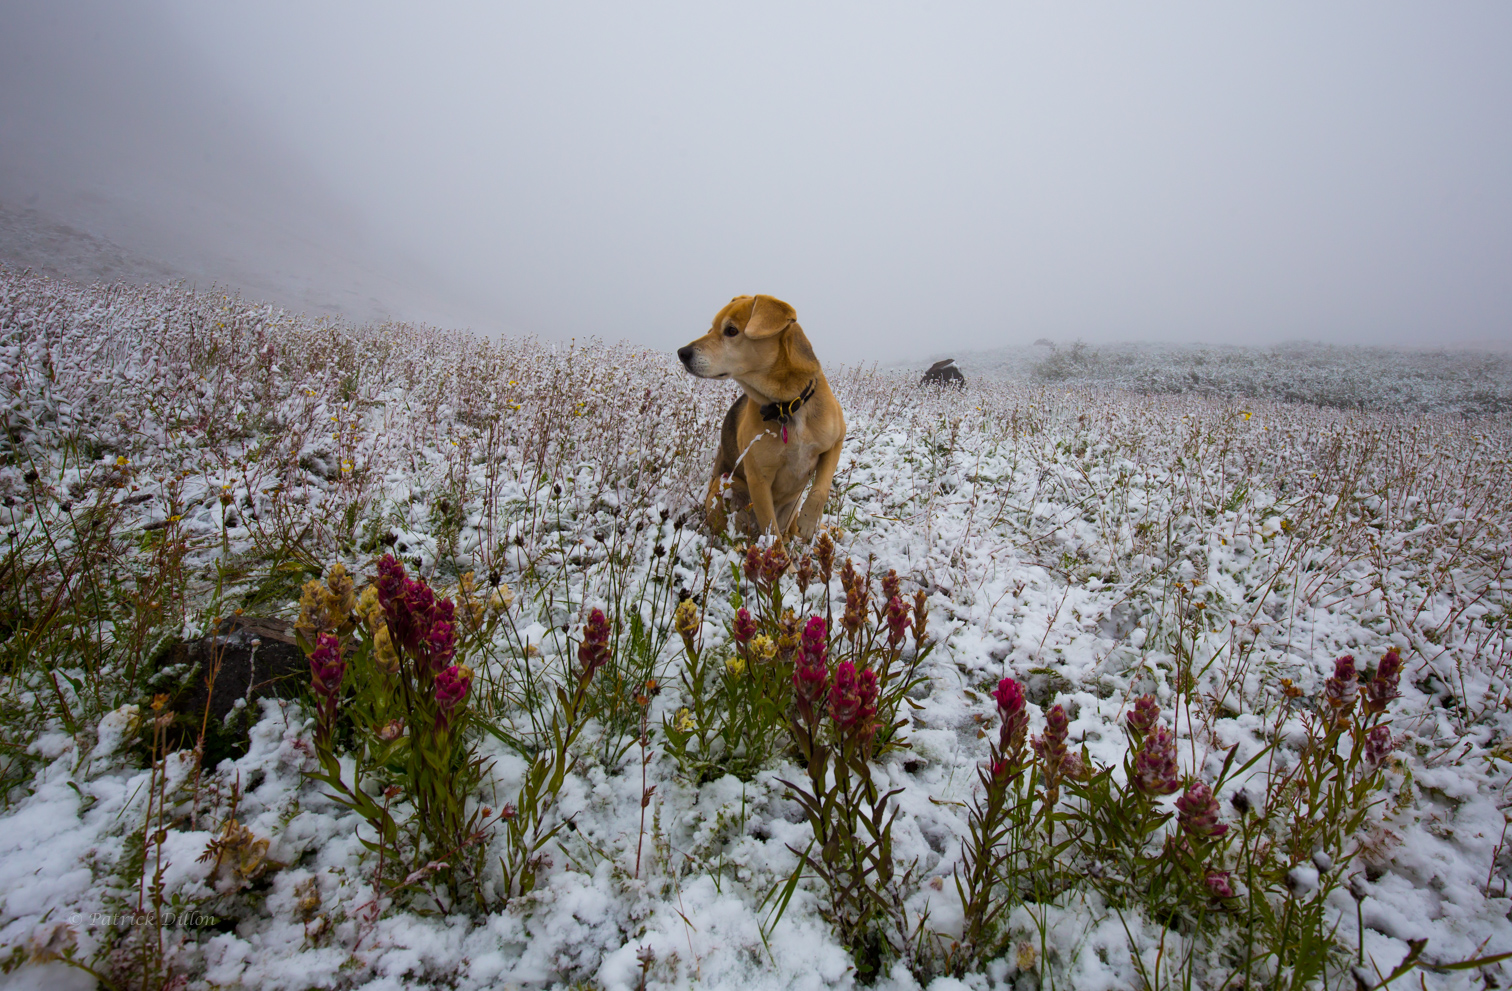 paintbrush-next-morning-with-dog-after-snow-email-fr-3693